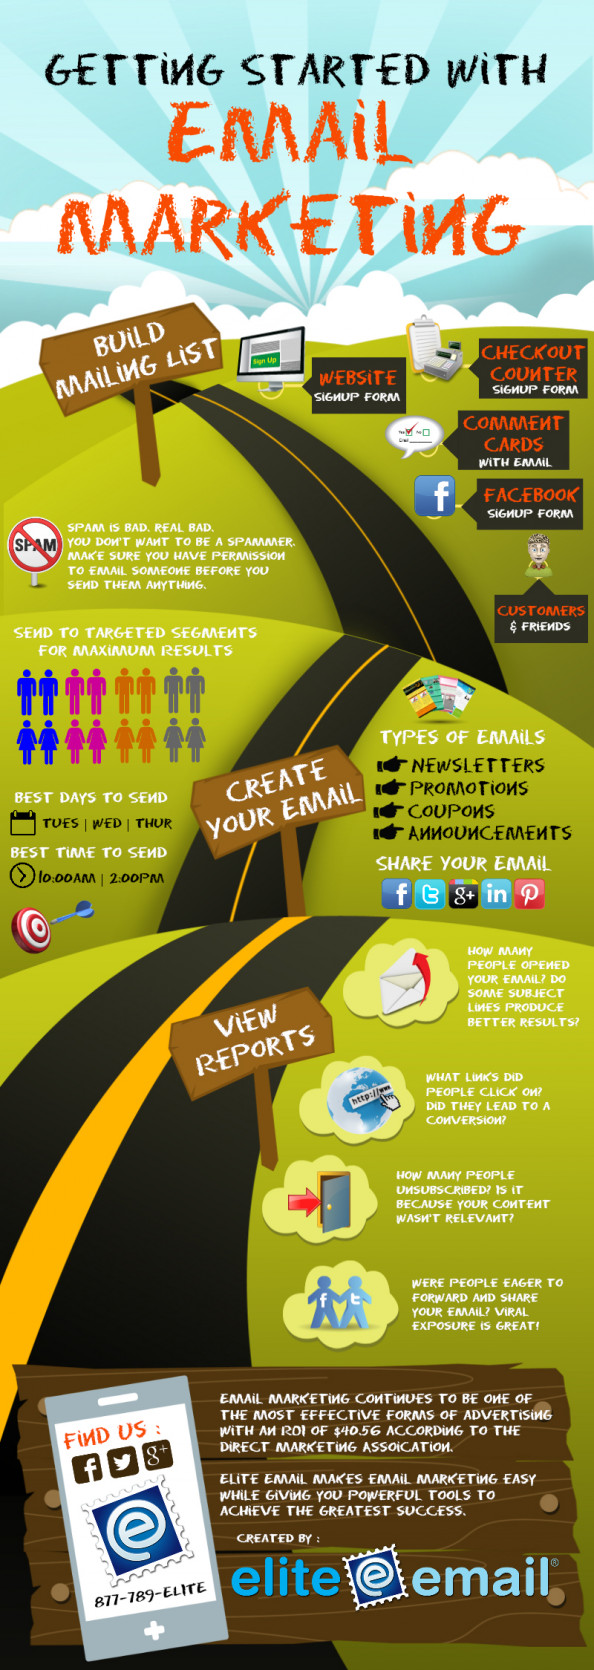 Getting Started with Email Marketing Infographic